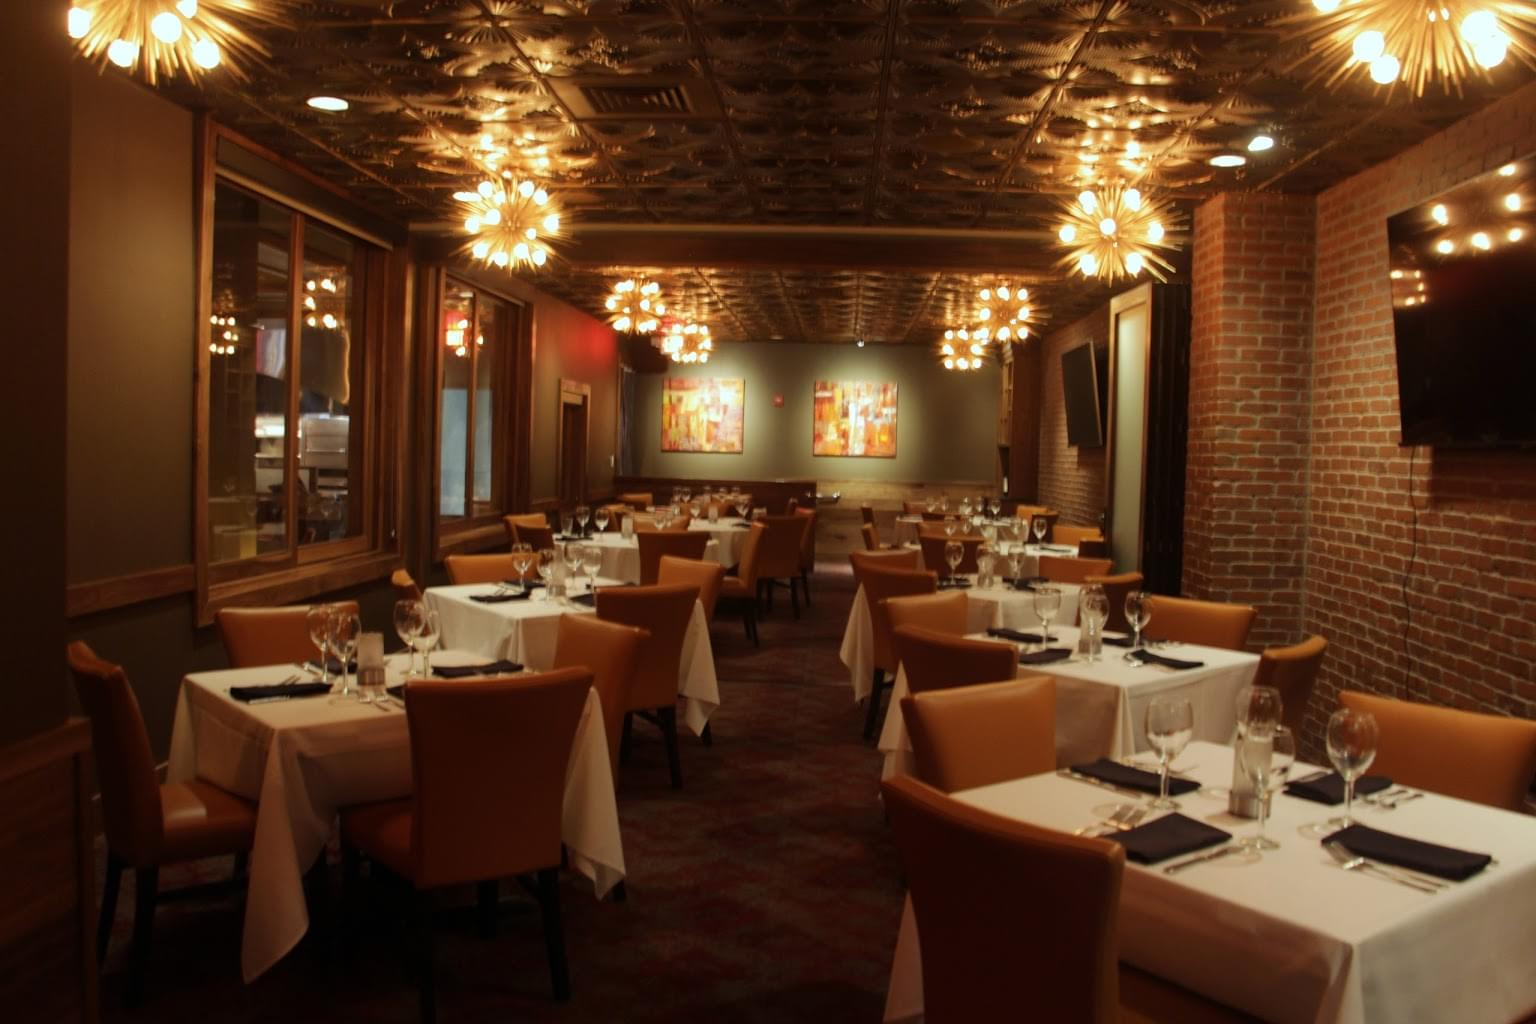 Sullivan's Steakhouse Naperville, IL Steak House Restaurant private room